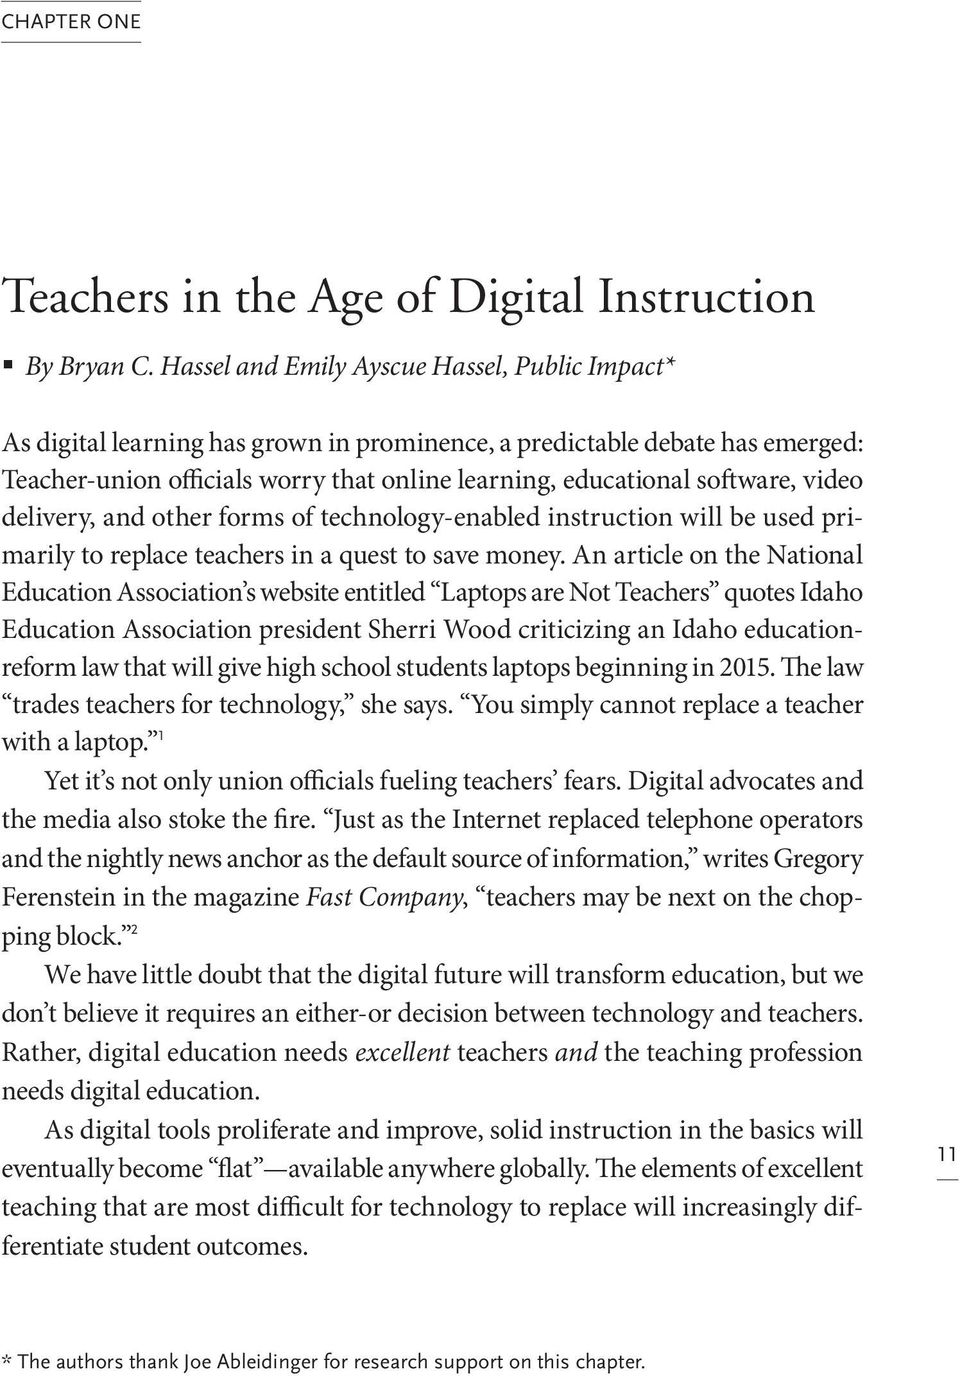 video delivery, and other forms of technology-enabled instruction will be used primarily to replace teachers in a quest to save money.